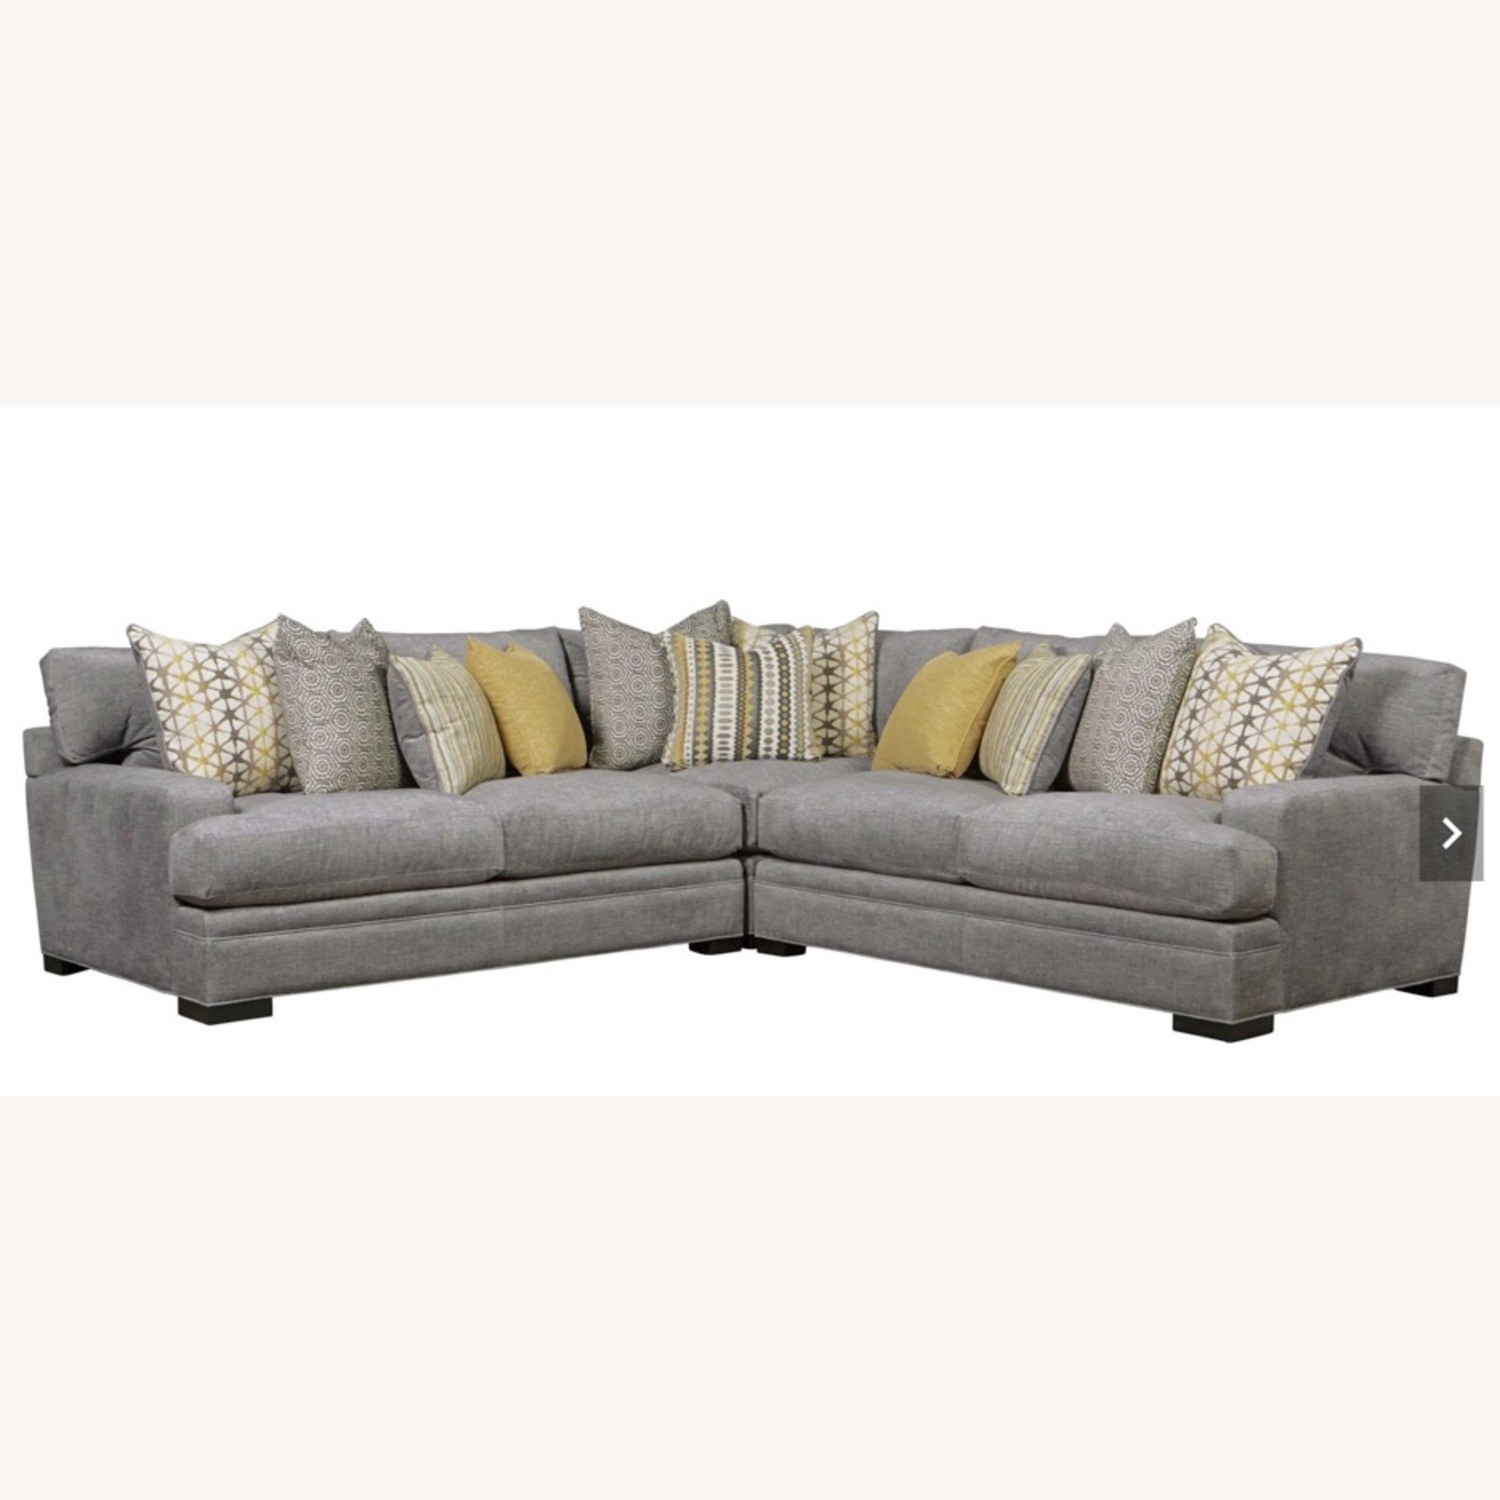 Rooms To Go Gray 3 Piece Sectional Cindy Crawford Home - image-3